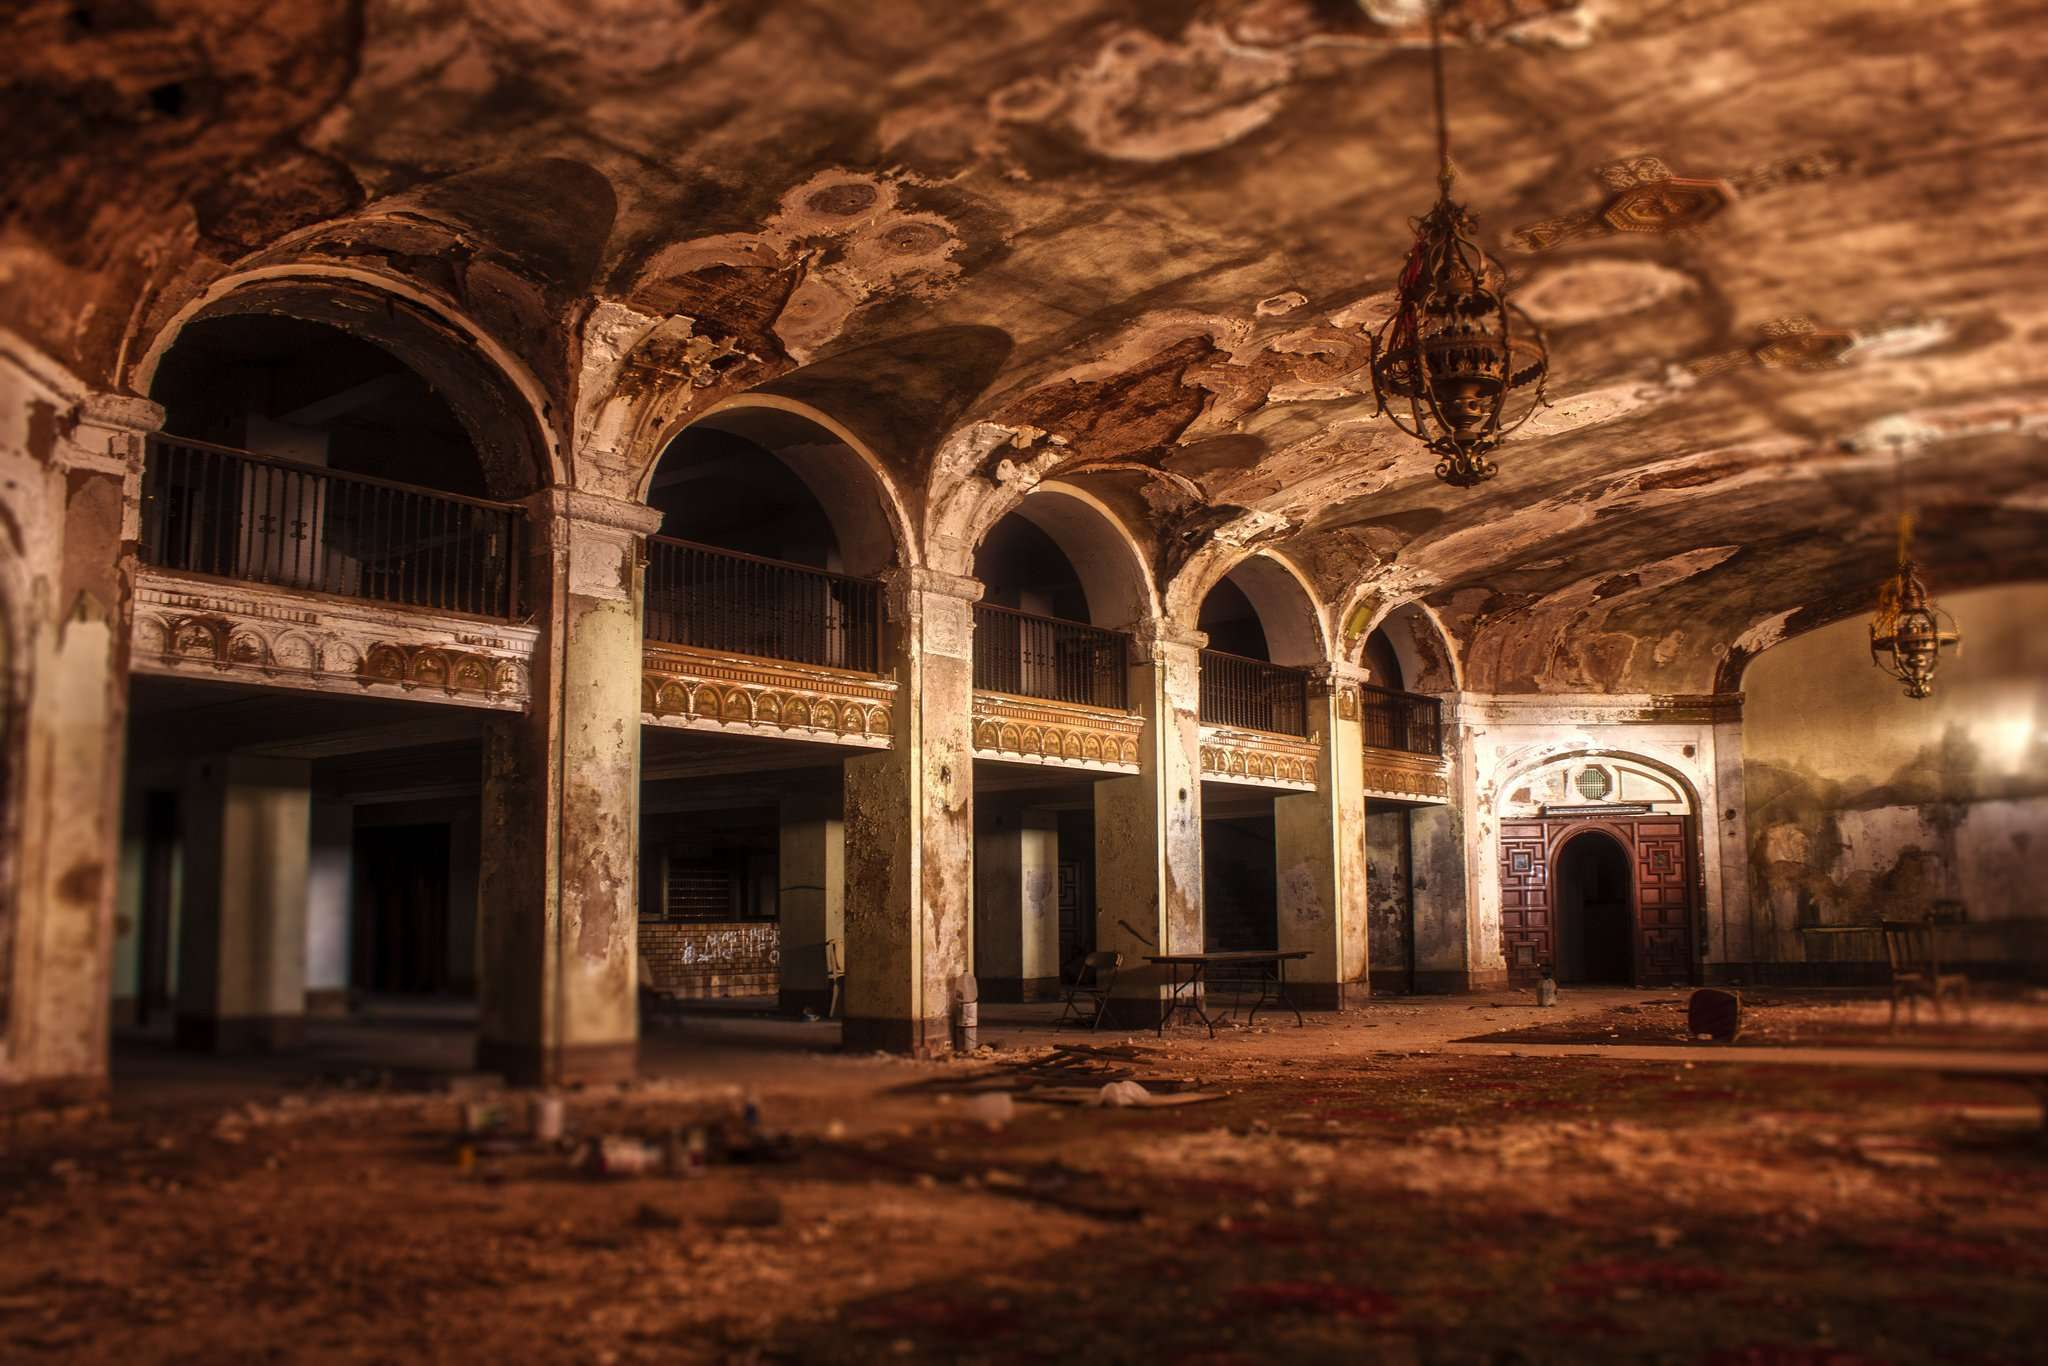 Texas Baker Hotel - Abandoned Places